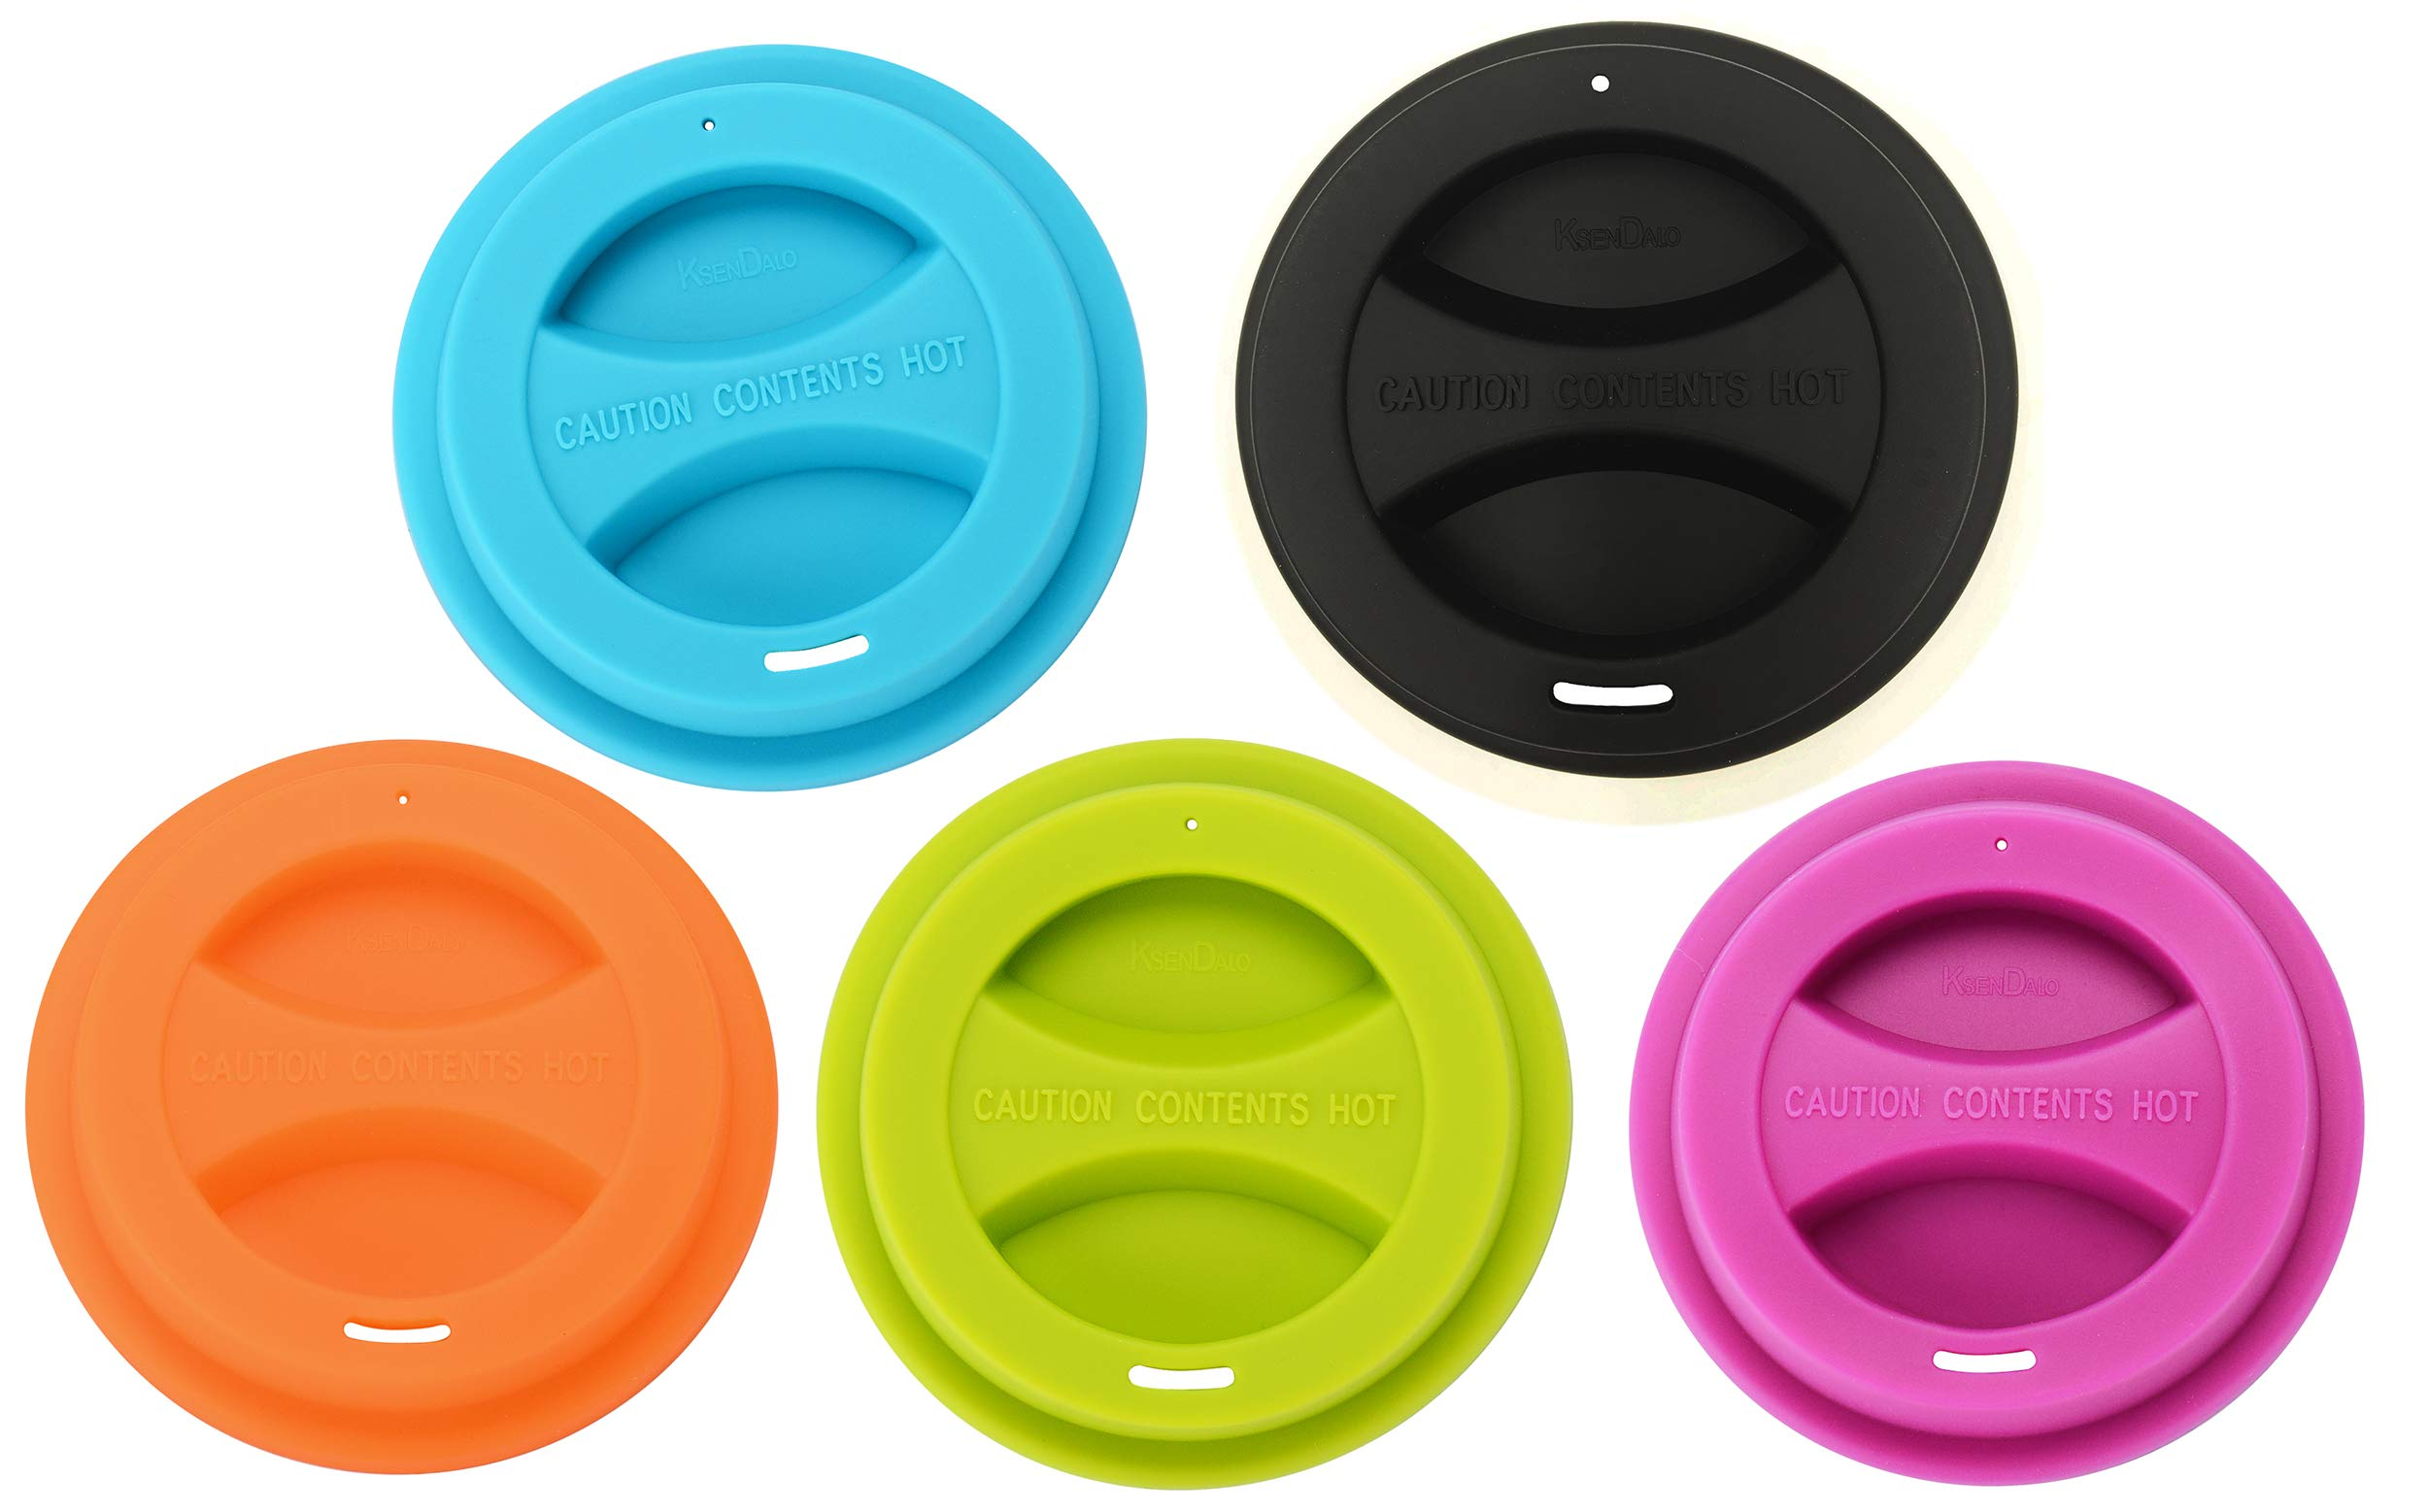 100/Pack Reusable Silicone Lids for 12oz & 16oz Coffee Cups, KSENDALO Drinking Coffee/Tea Silicone Cup Lids, Random color